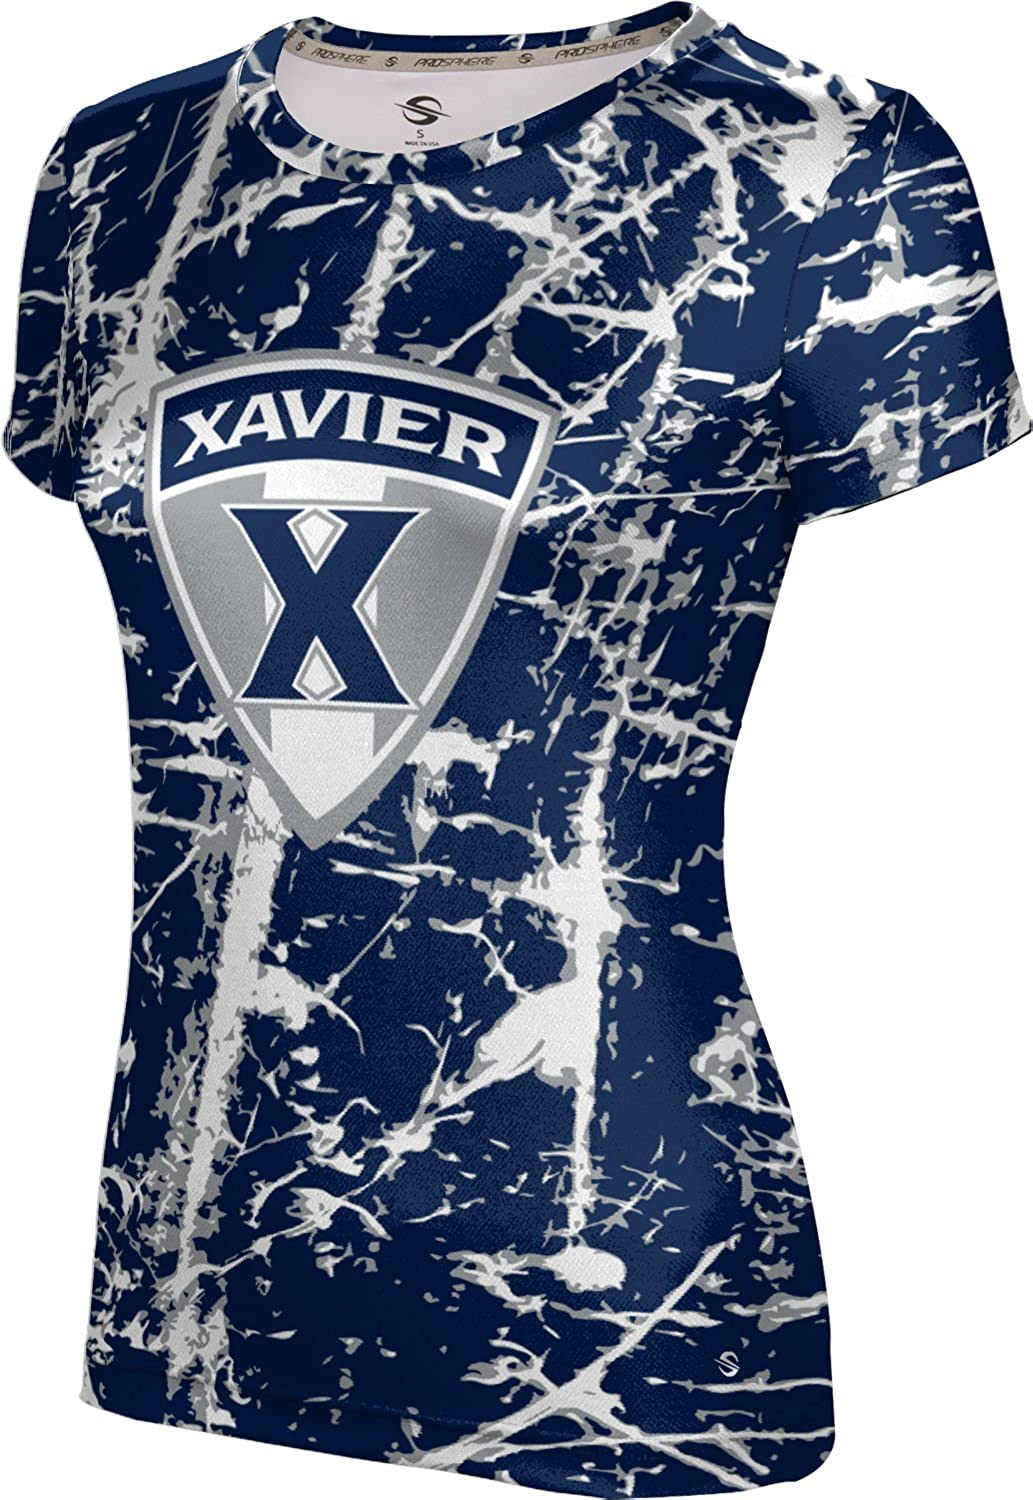 ProSphere Xavier University Boys Performance T-Shirt Distressed